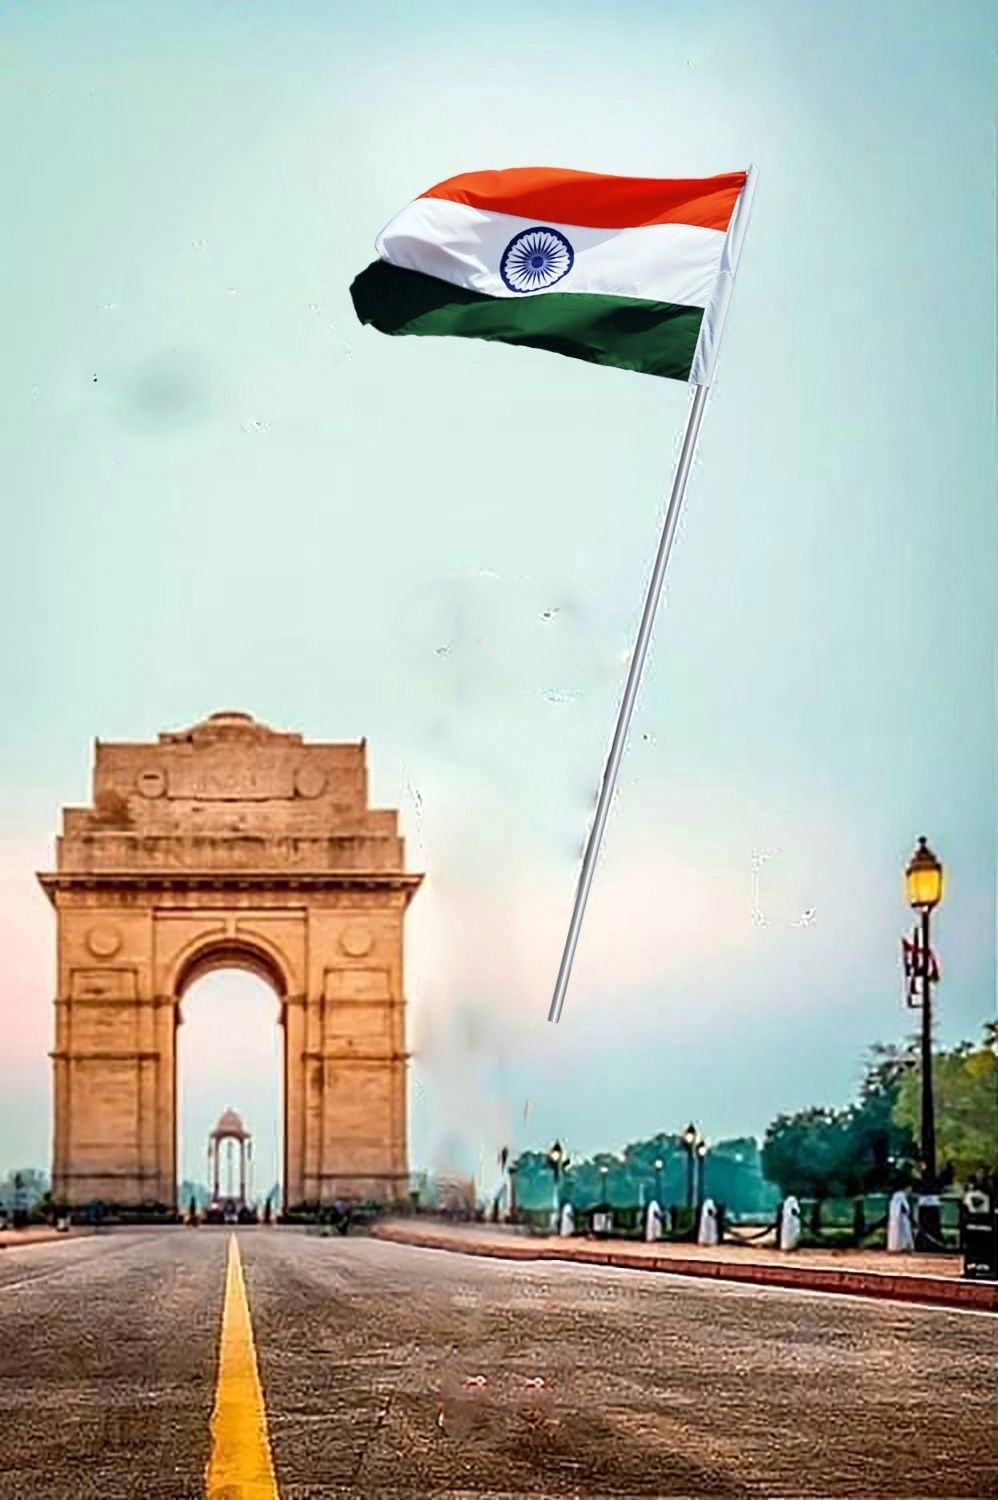 Pin by Rahulkumar on Blurred background in 2019 Independence day 998x1500